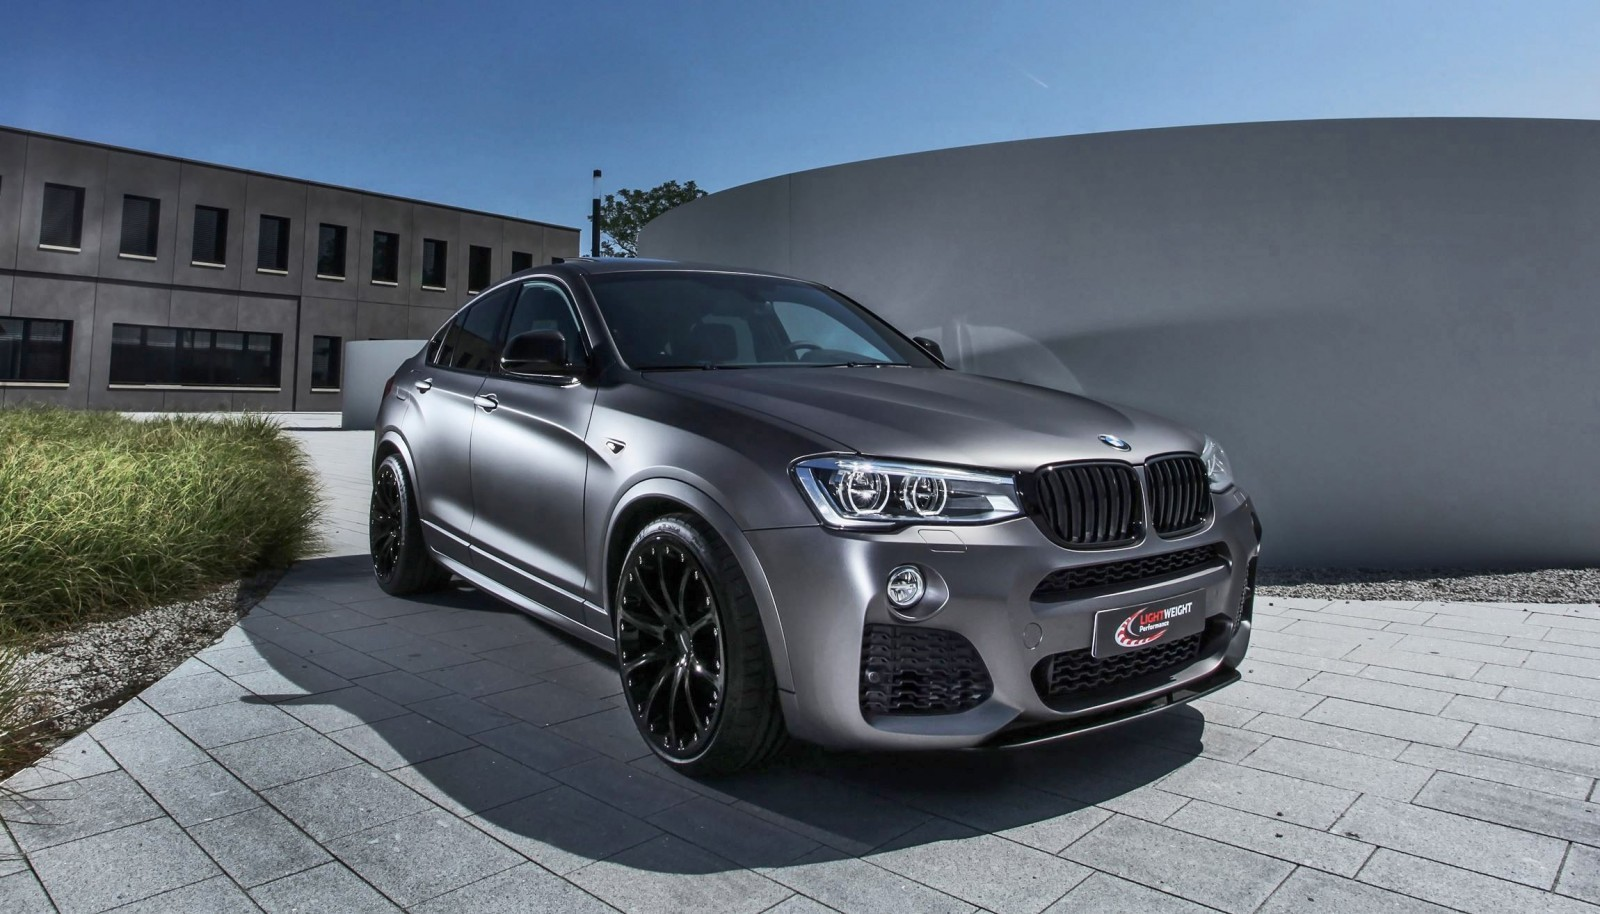 Bmw Rims 22 Inch >> BMW X4 by LIGHTWEIGHT Performance